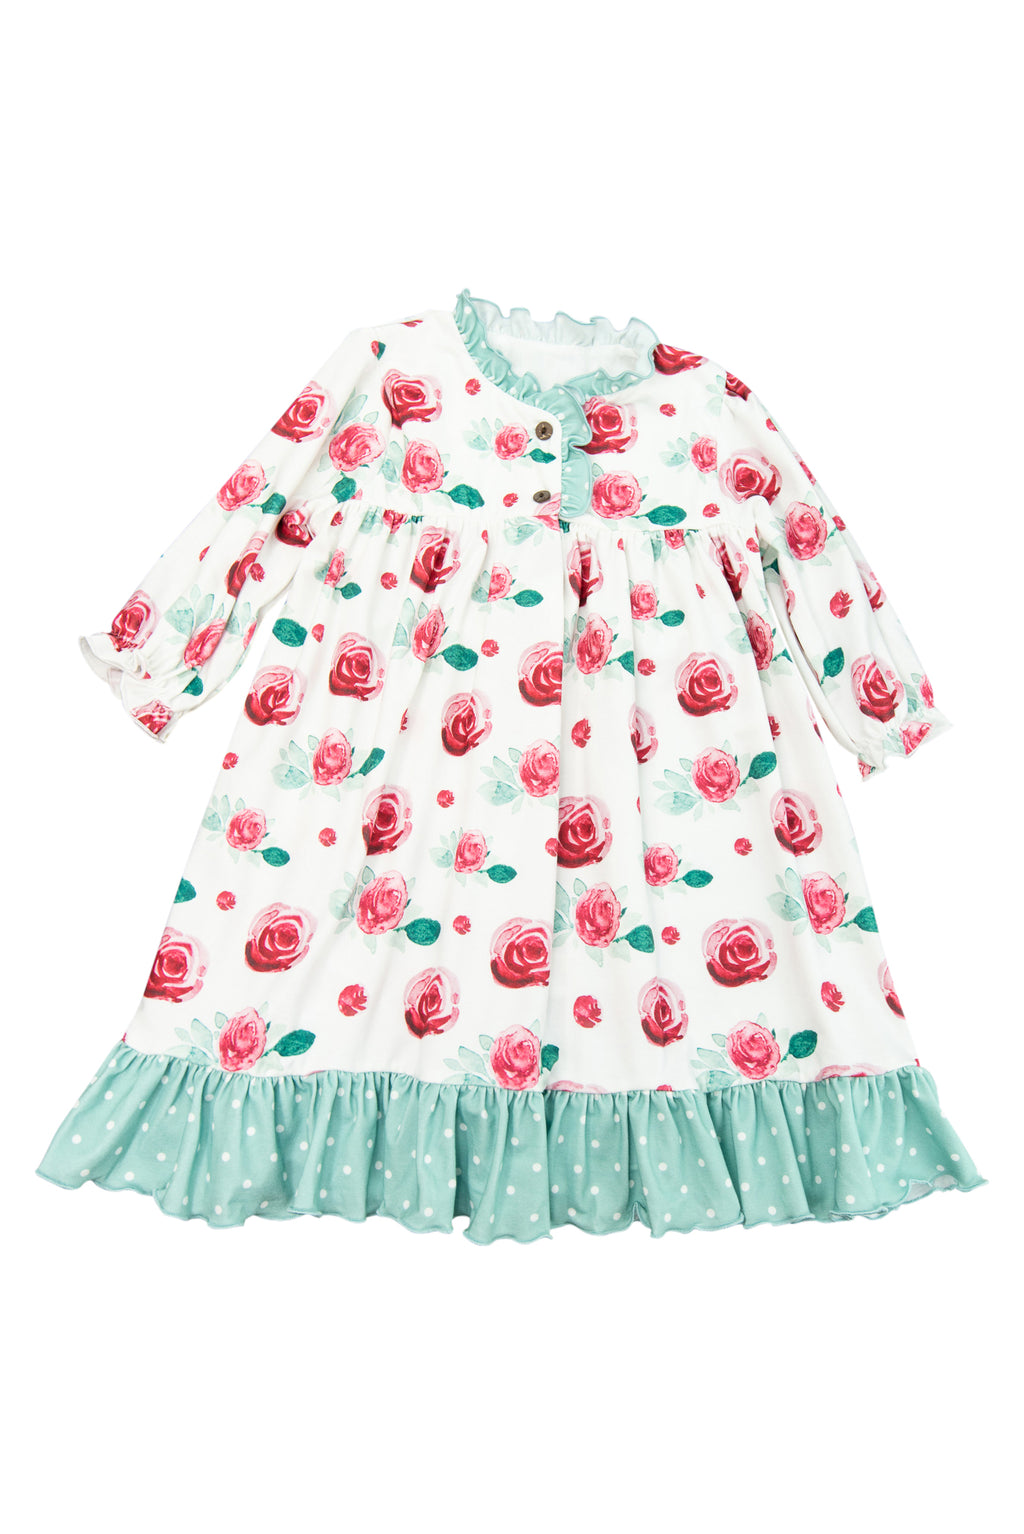 Girls Winter Floral Nightgown